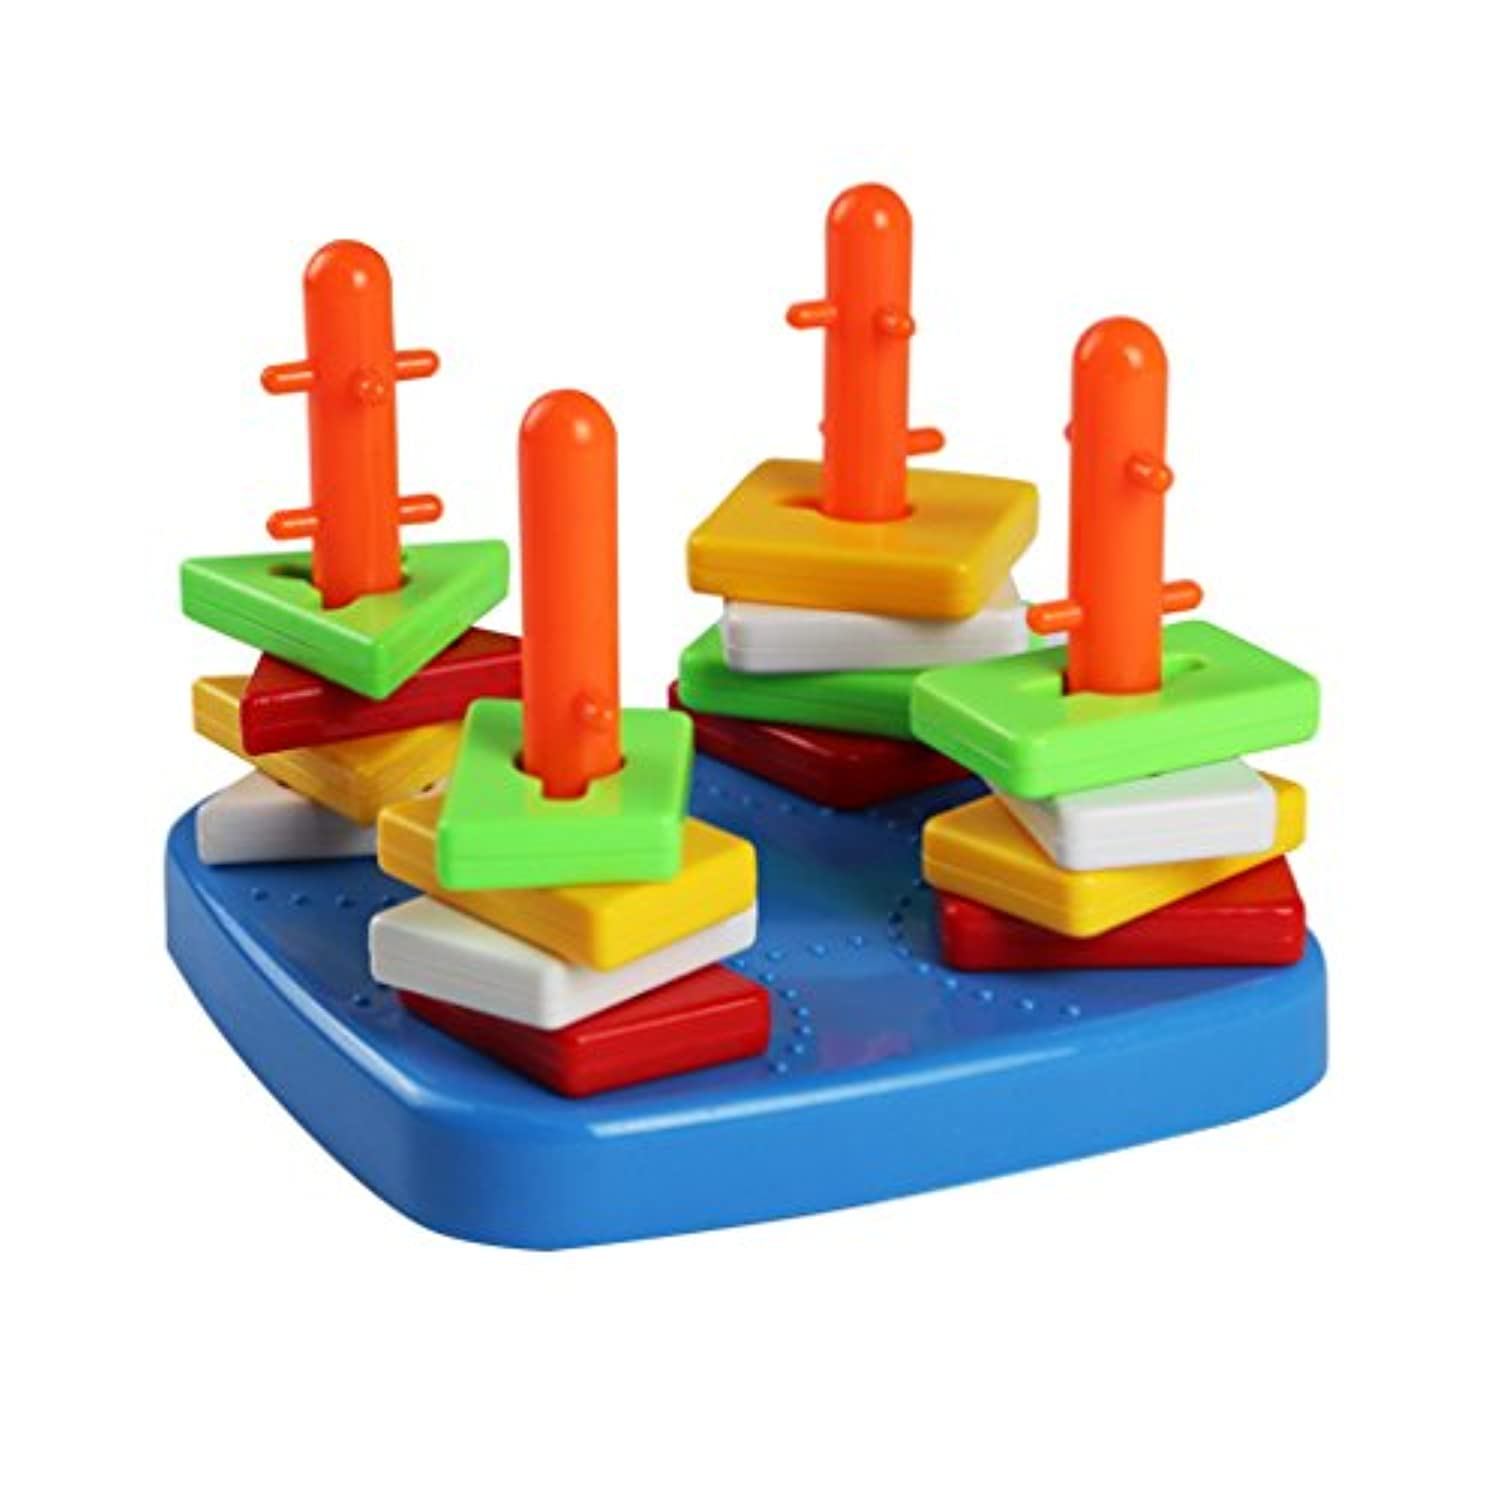 Shape Sorter Geometric Stacker Toy Plastic Building Blocks Colourful Piece Column Puzzle Stacking Educational Toys for Kids 3 4 Years Old